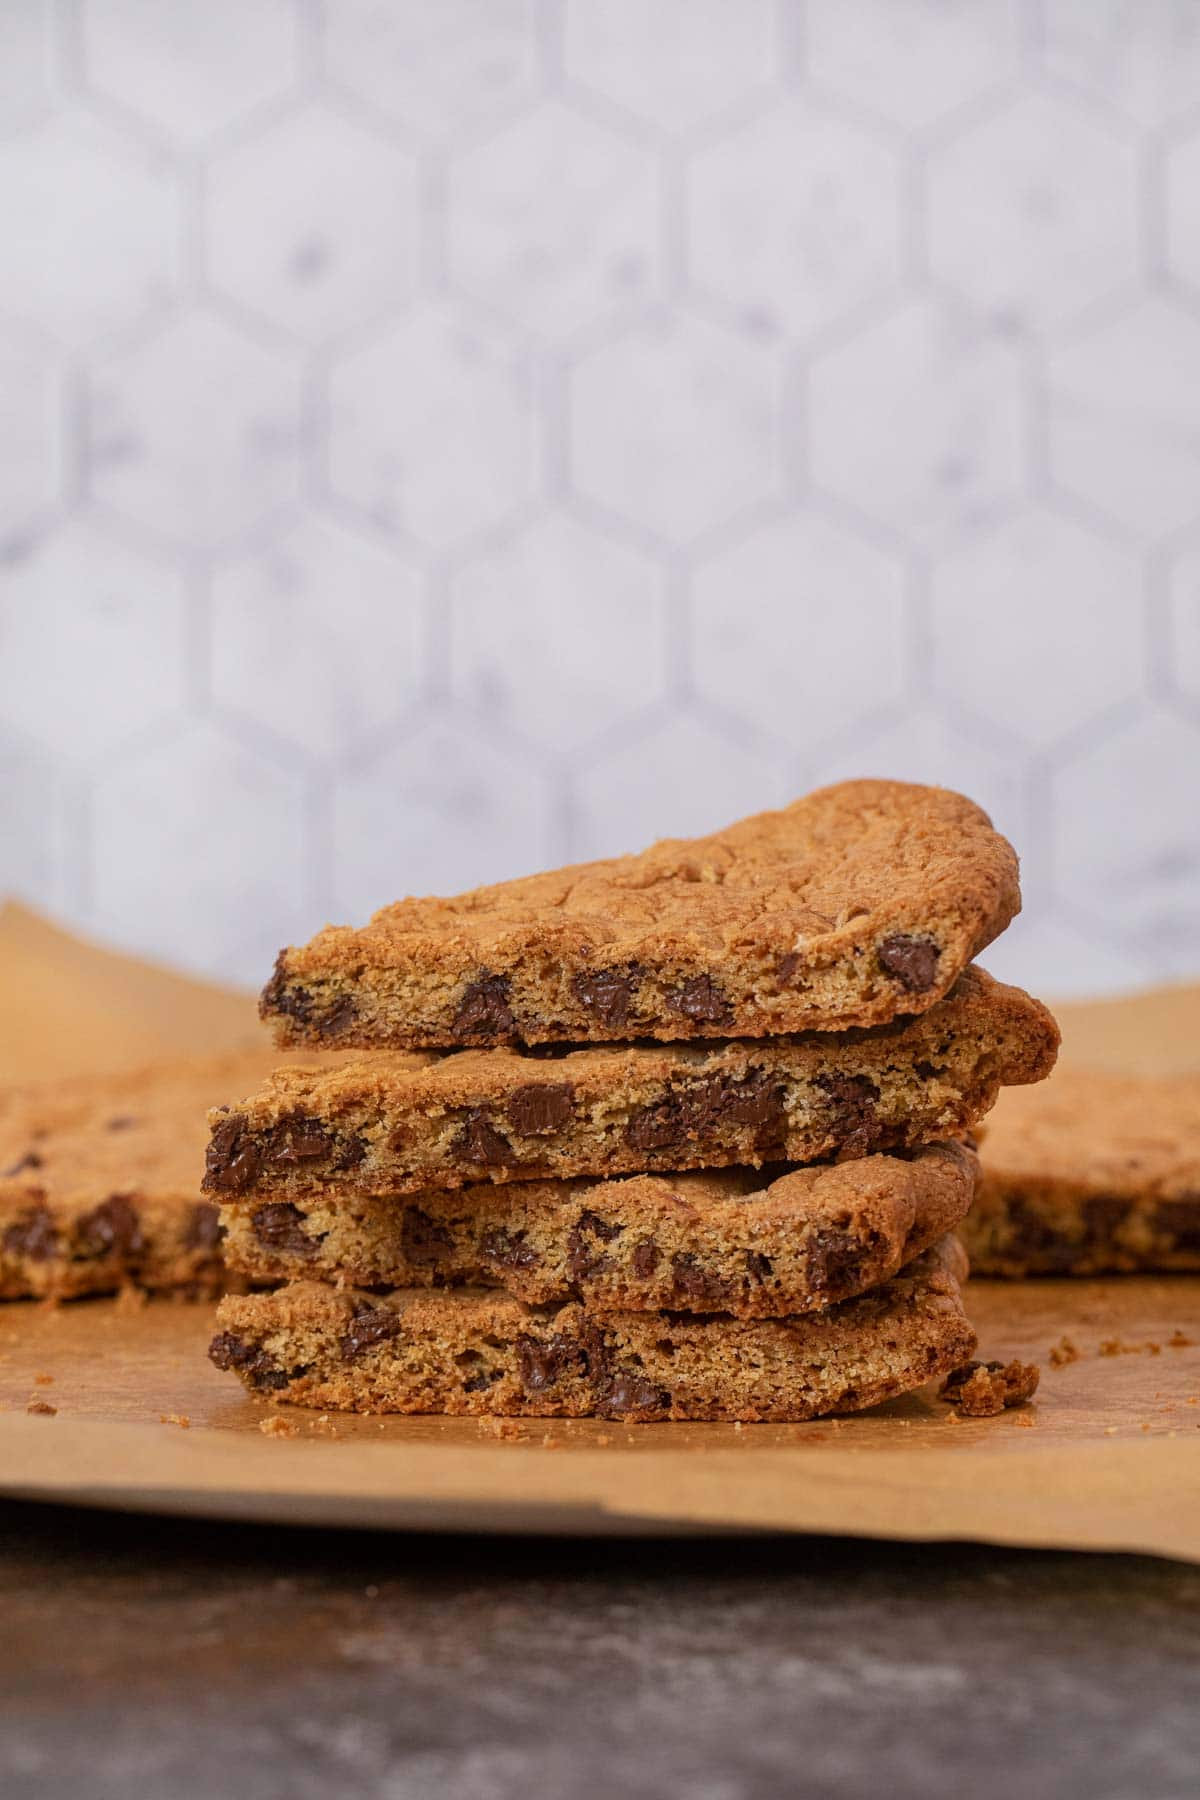 Giant Chocolate Chip Cookie slices in stack